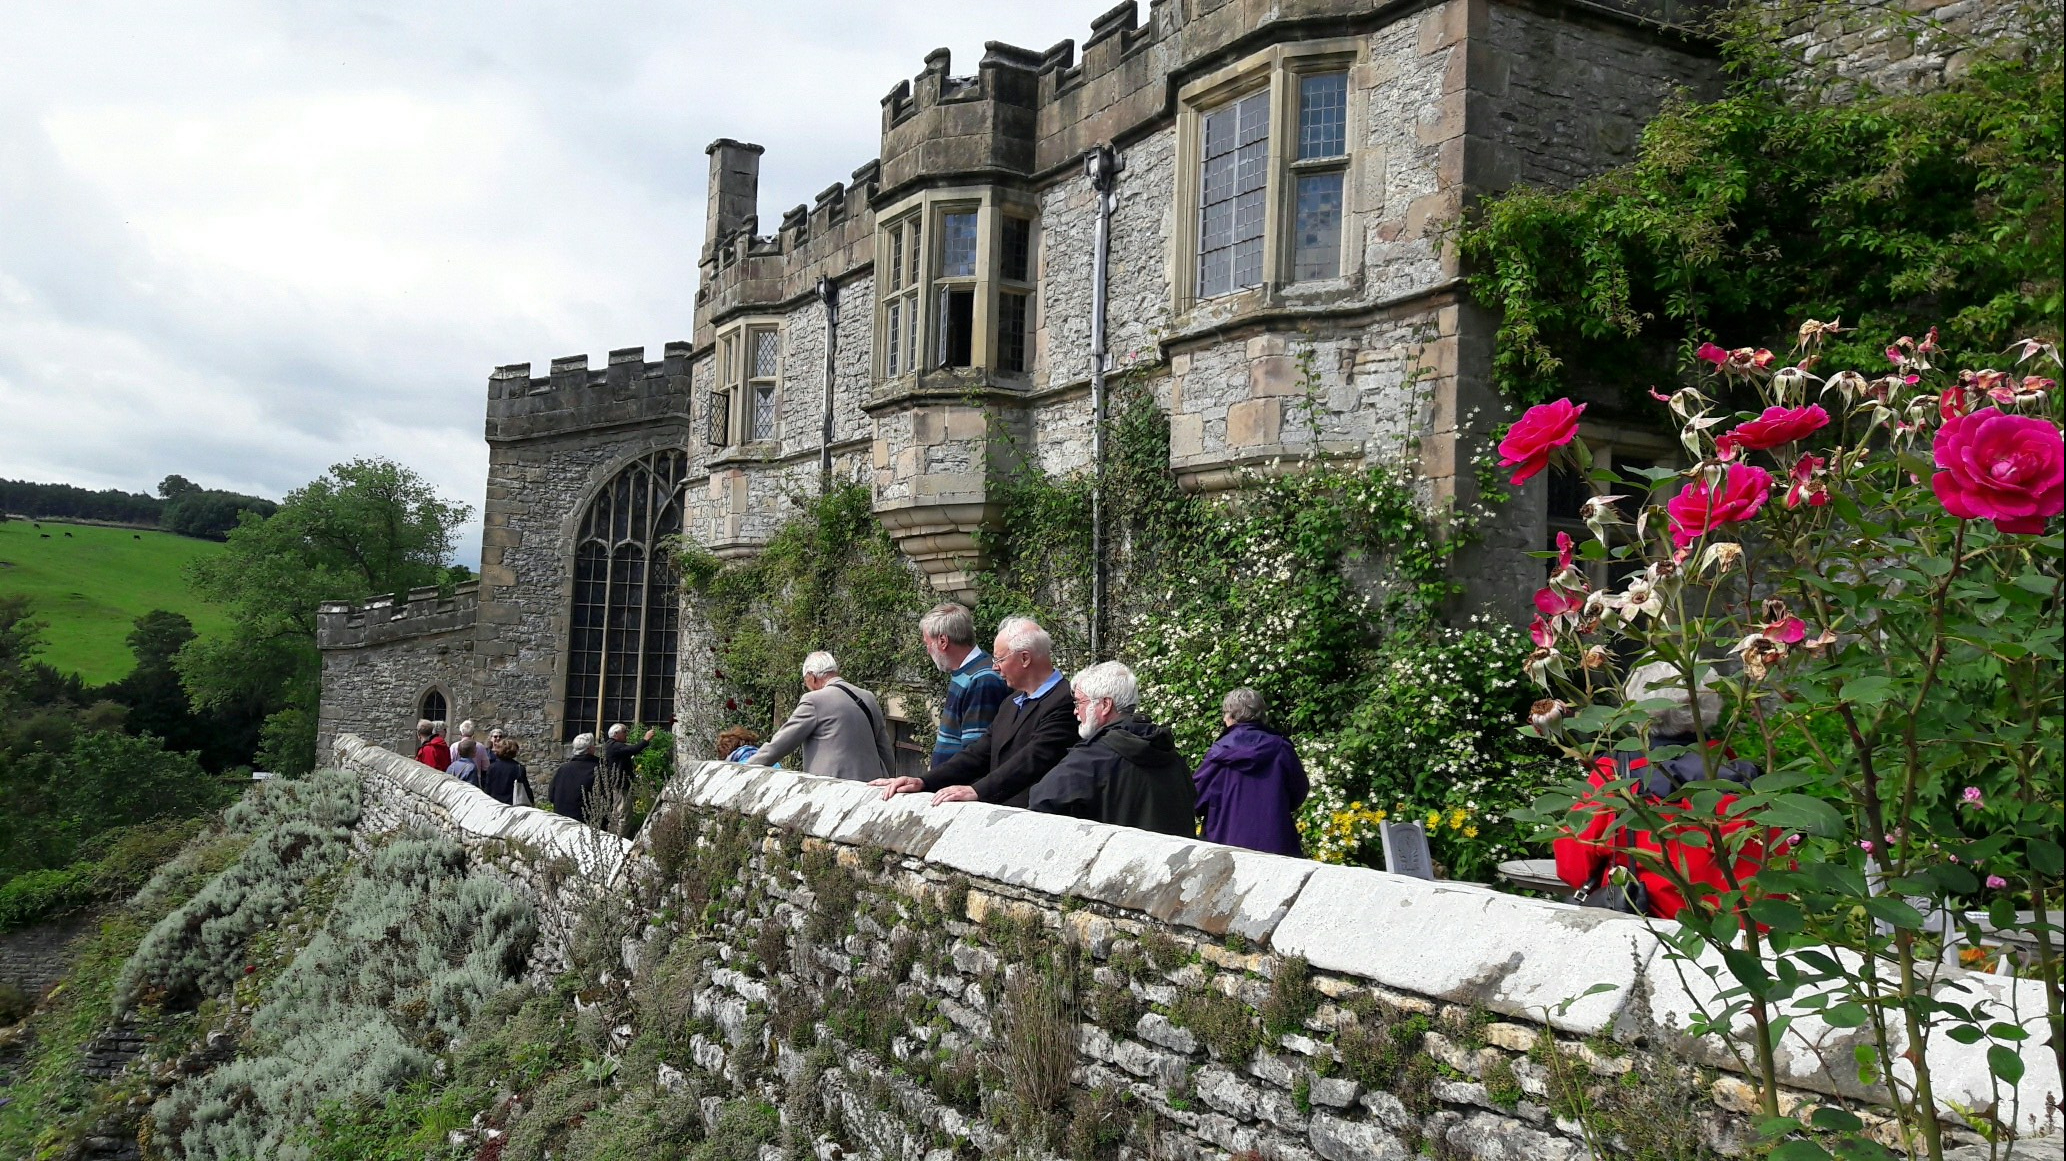 Members enjoying the views from Haddon Hall, Derbyshire, Kew Guild, 2017